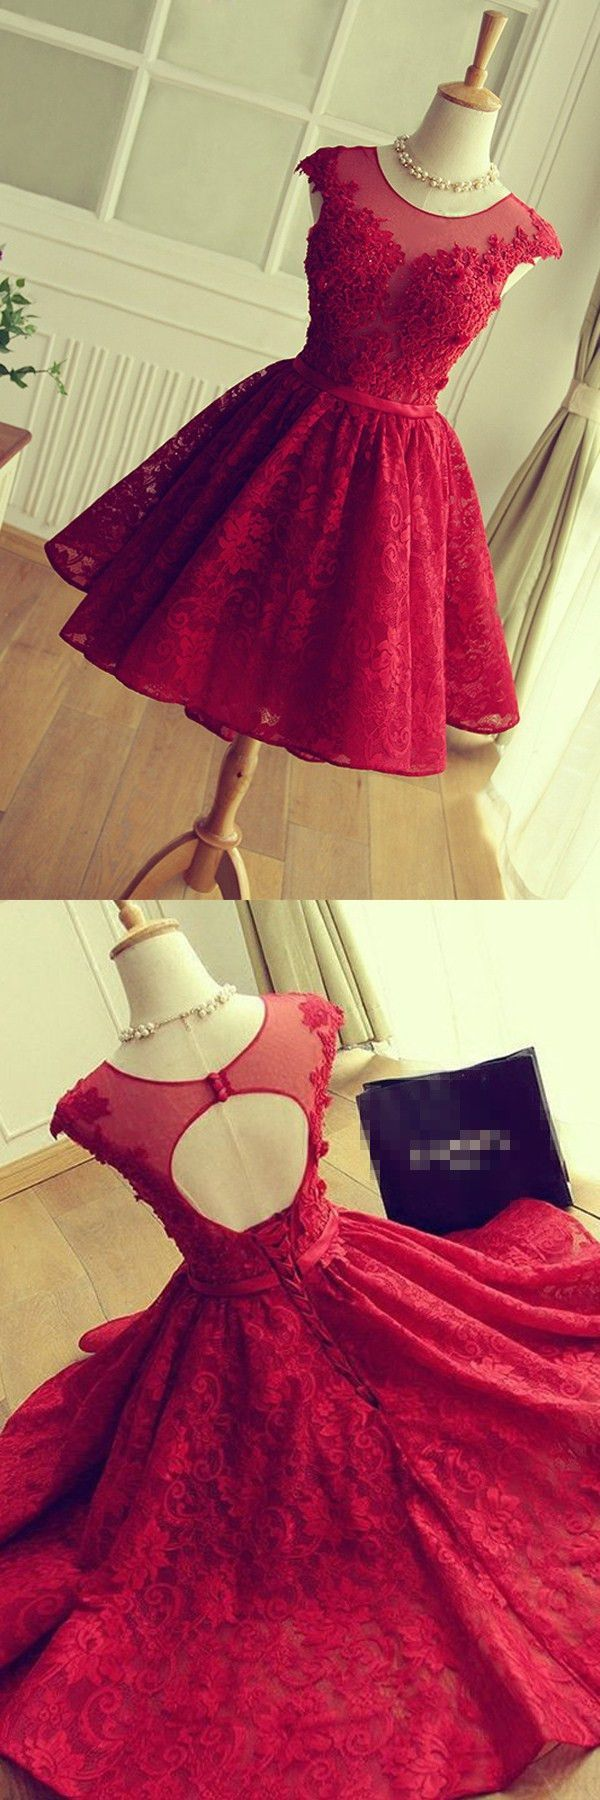 2016 homecoming dresses,scoop red hoco dresses,luxurious homecoming dresses,red party dresses,fancy dancing party dresses,cheap lace homecoming dresses for teens,modest open back hoco dresses - long black and white dresses, green and pink dress, winter dresses *sponsored https://www.pinterest.com/dresses_dress/ https://www.pinterest.com/explore/dress/ https://www.pinterest.com/dresses_dress/bodycon-dress/ https://www.modaoperandi.com/shop/clothing/dresses